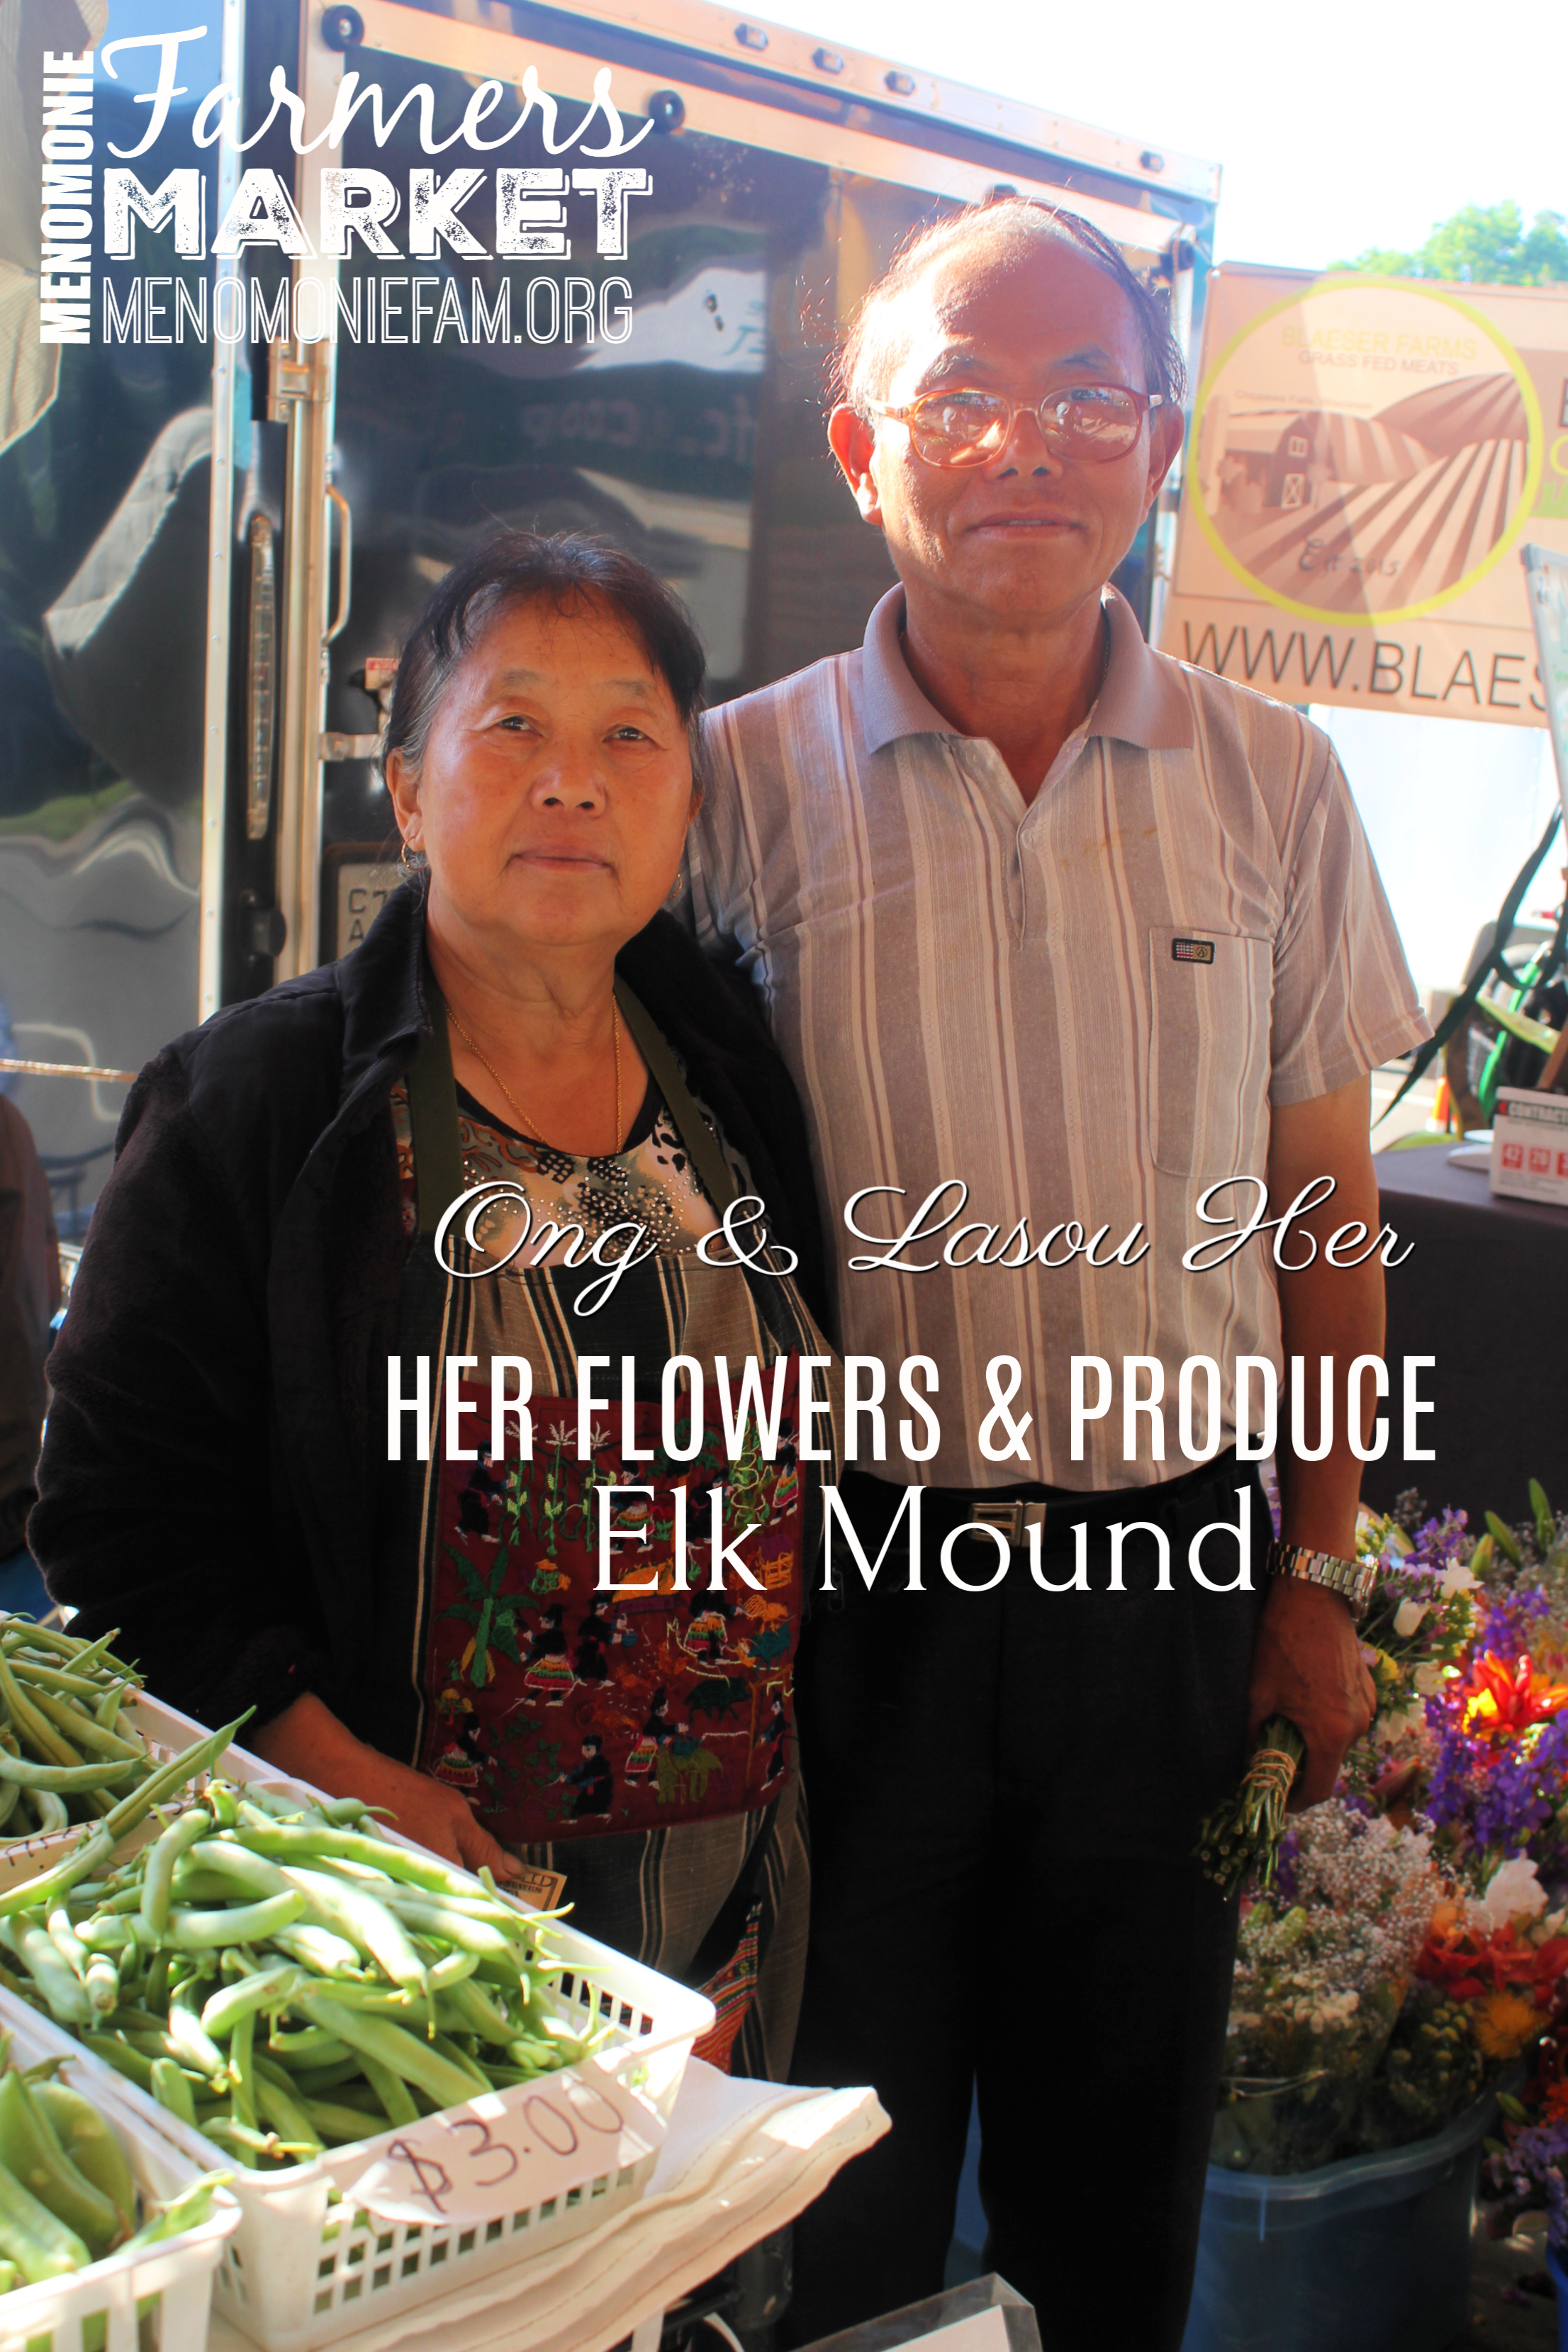 HER FLOWERS & PRODUCE